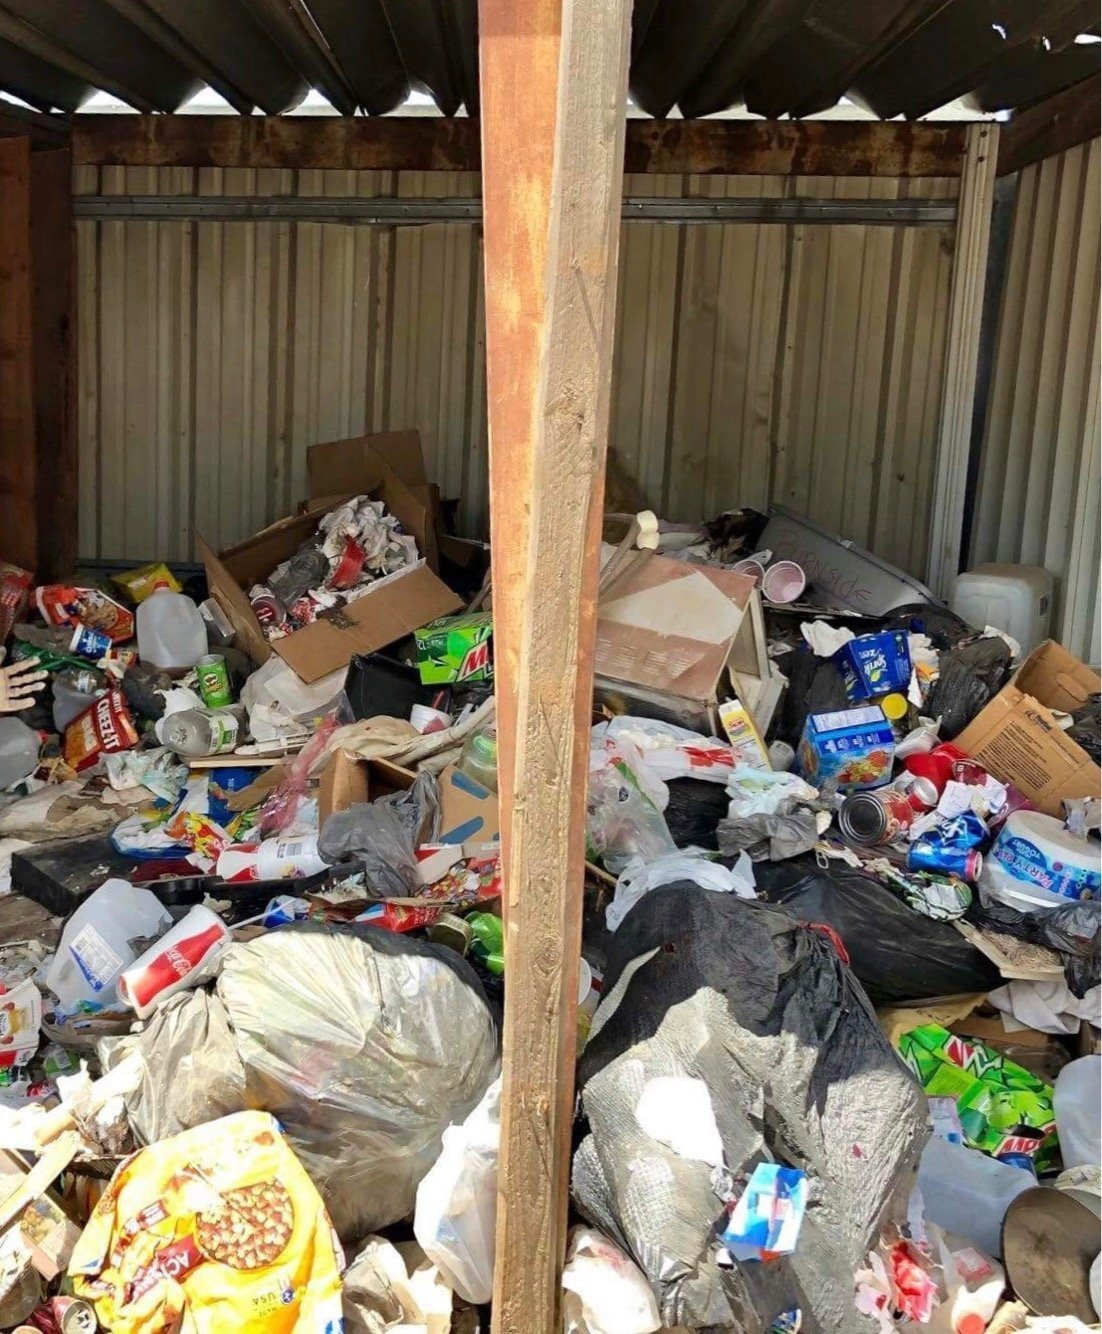 County Tackling High Number Of Blight Reports